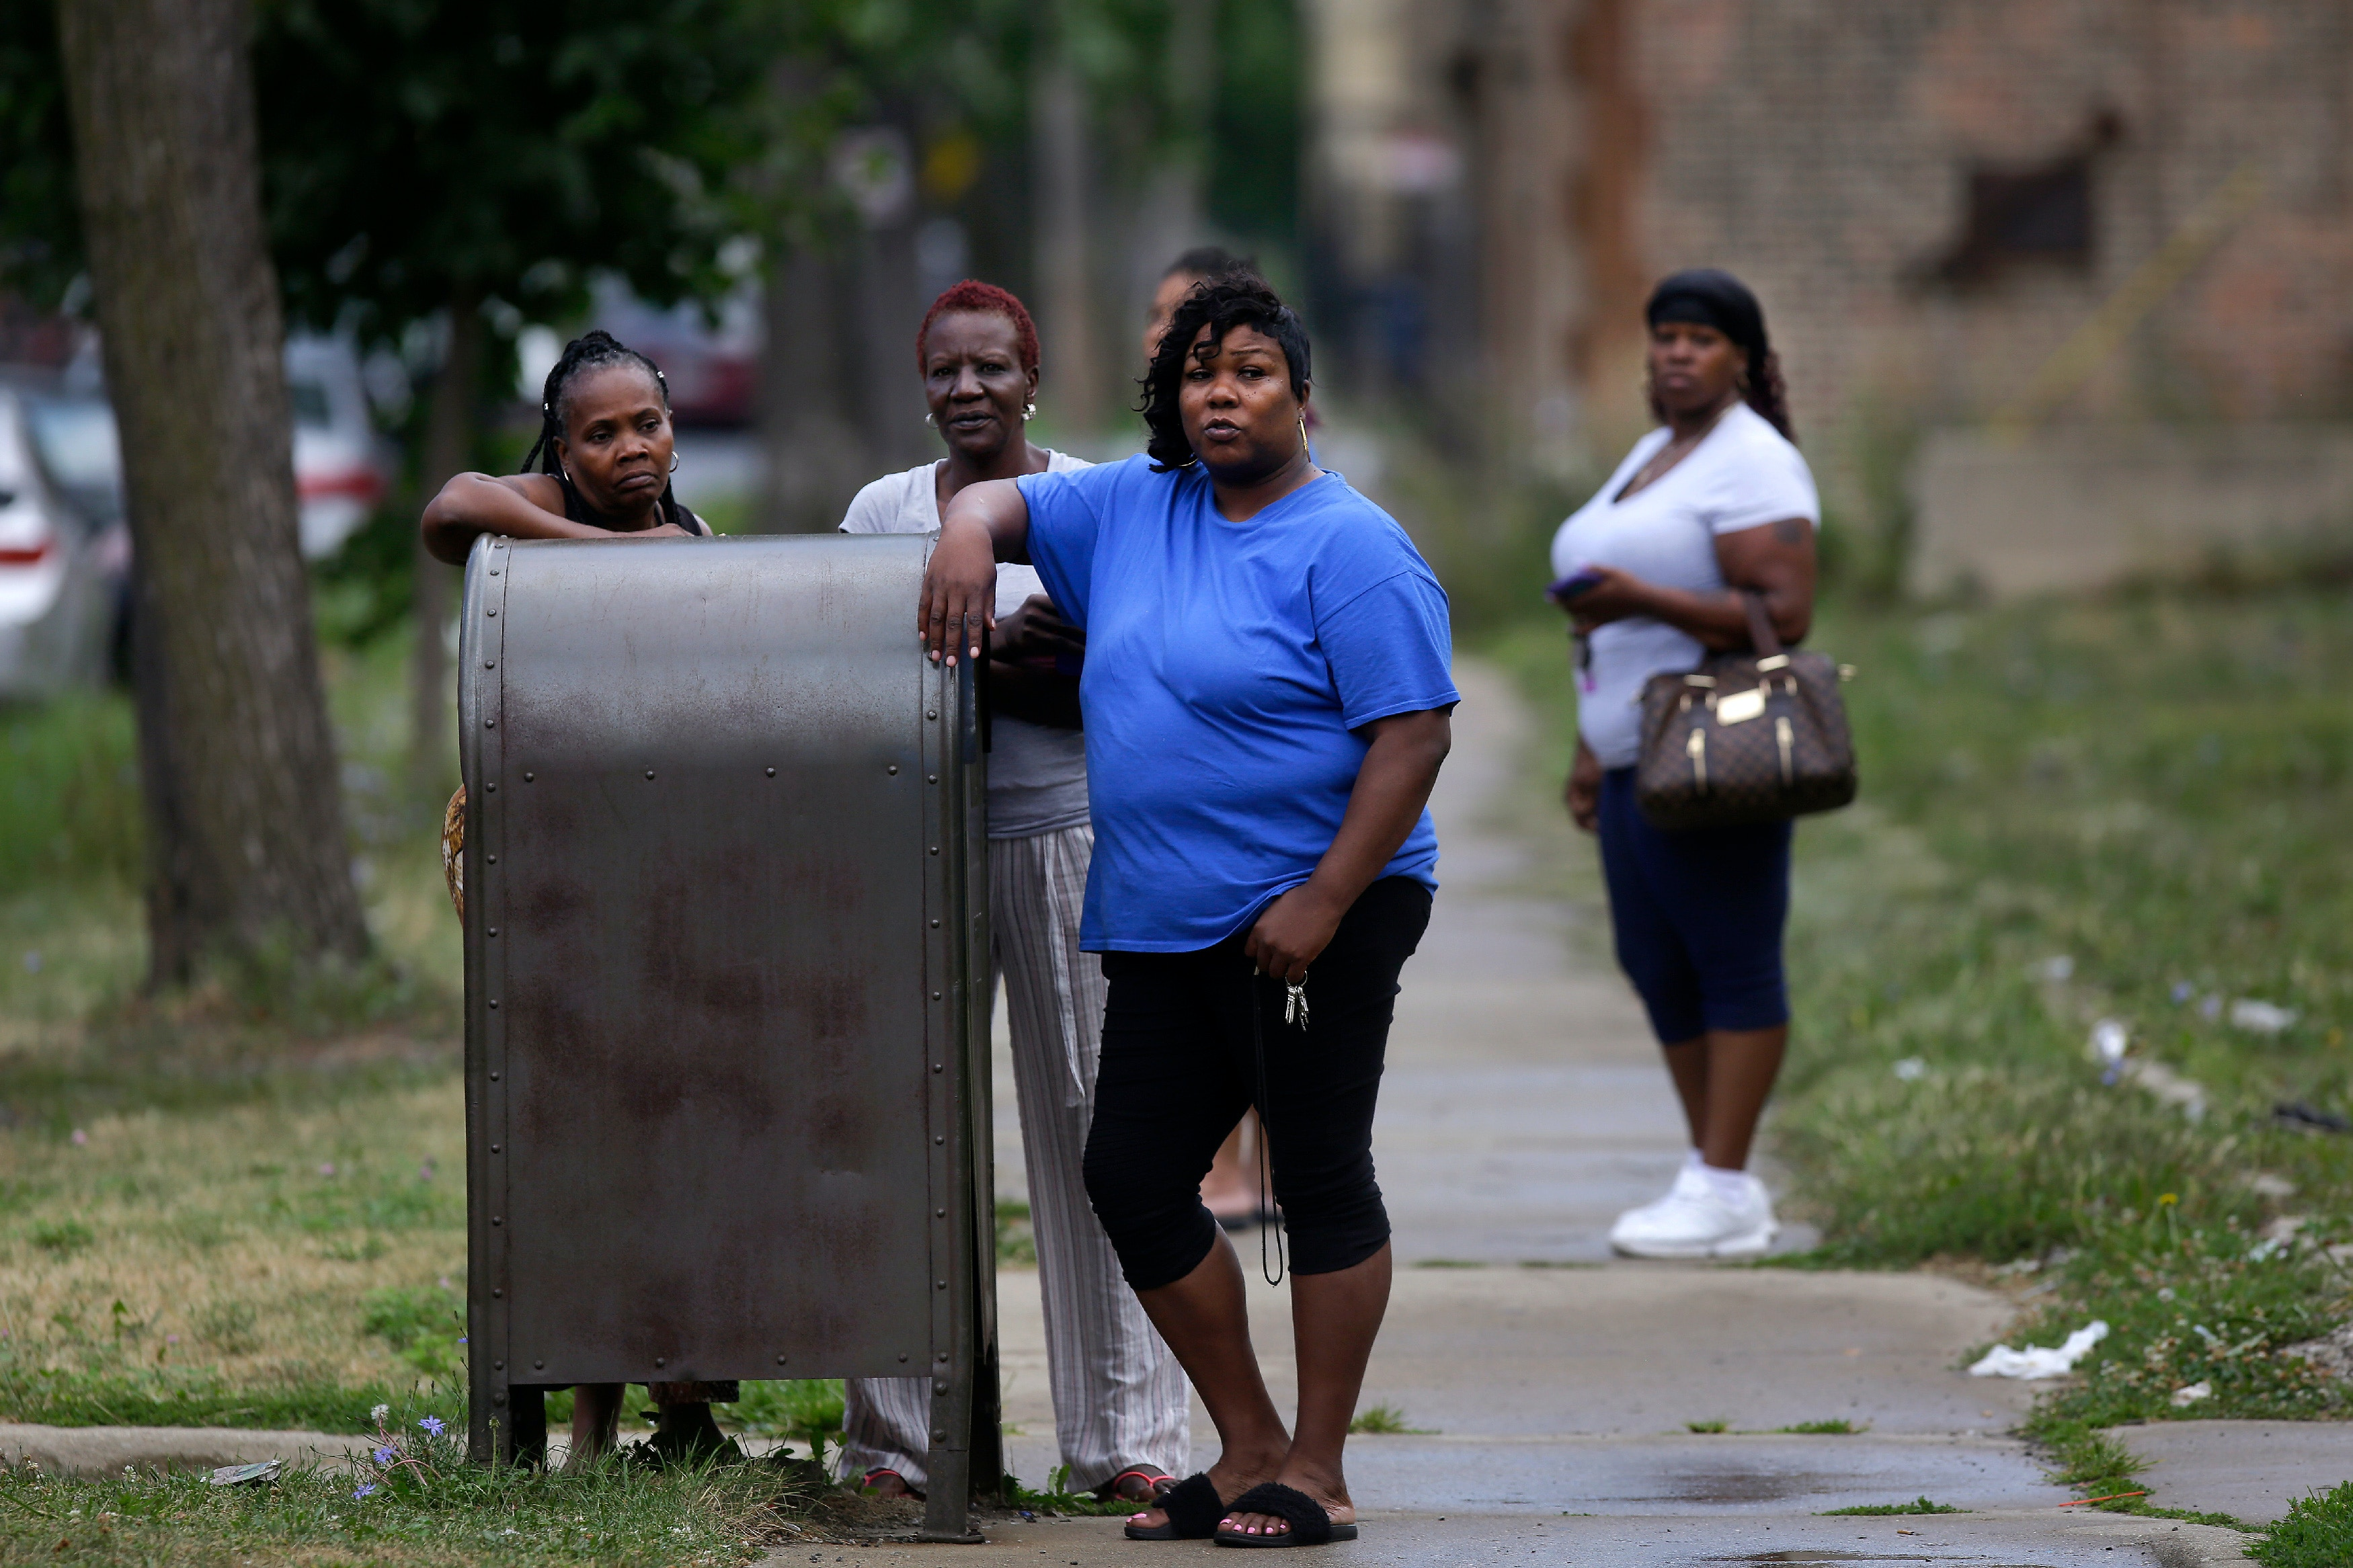 CHICAGO, IL - AUGUST 5 : Bystanders watch as Chicago Police officers and detectives investigate a shooting where multiple people were shot on Sunday, August 5, 2018 in Chicago, Illinois. In the last 24 hours over 30 people have been shot and at least 2 killed across Chicago including five mass shootings, where four or more victims were shot at one location. (Photo by Joshua Lott/Getty Images)